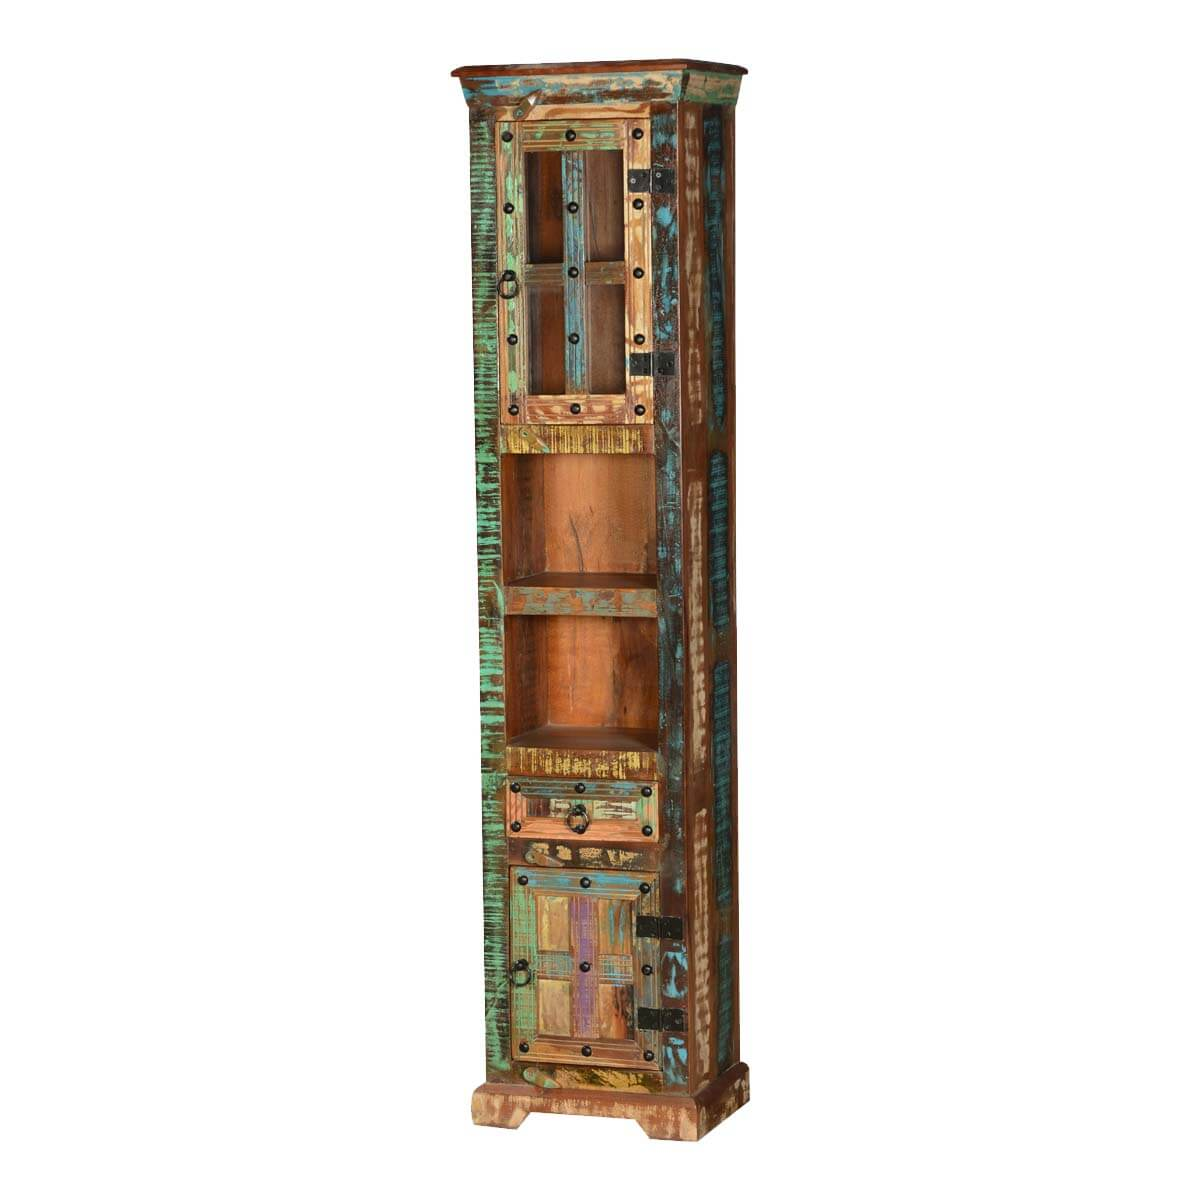 Gothic Rustic Rainbow Solid Reclaimed Wood Tall Narrow Linen Cabinet